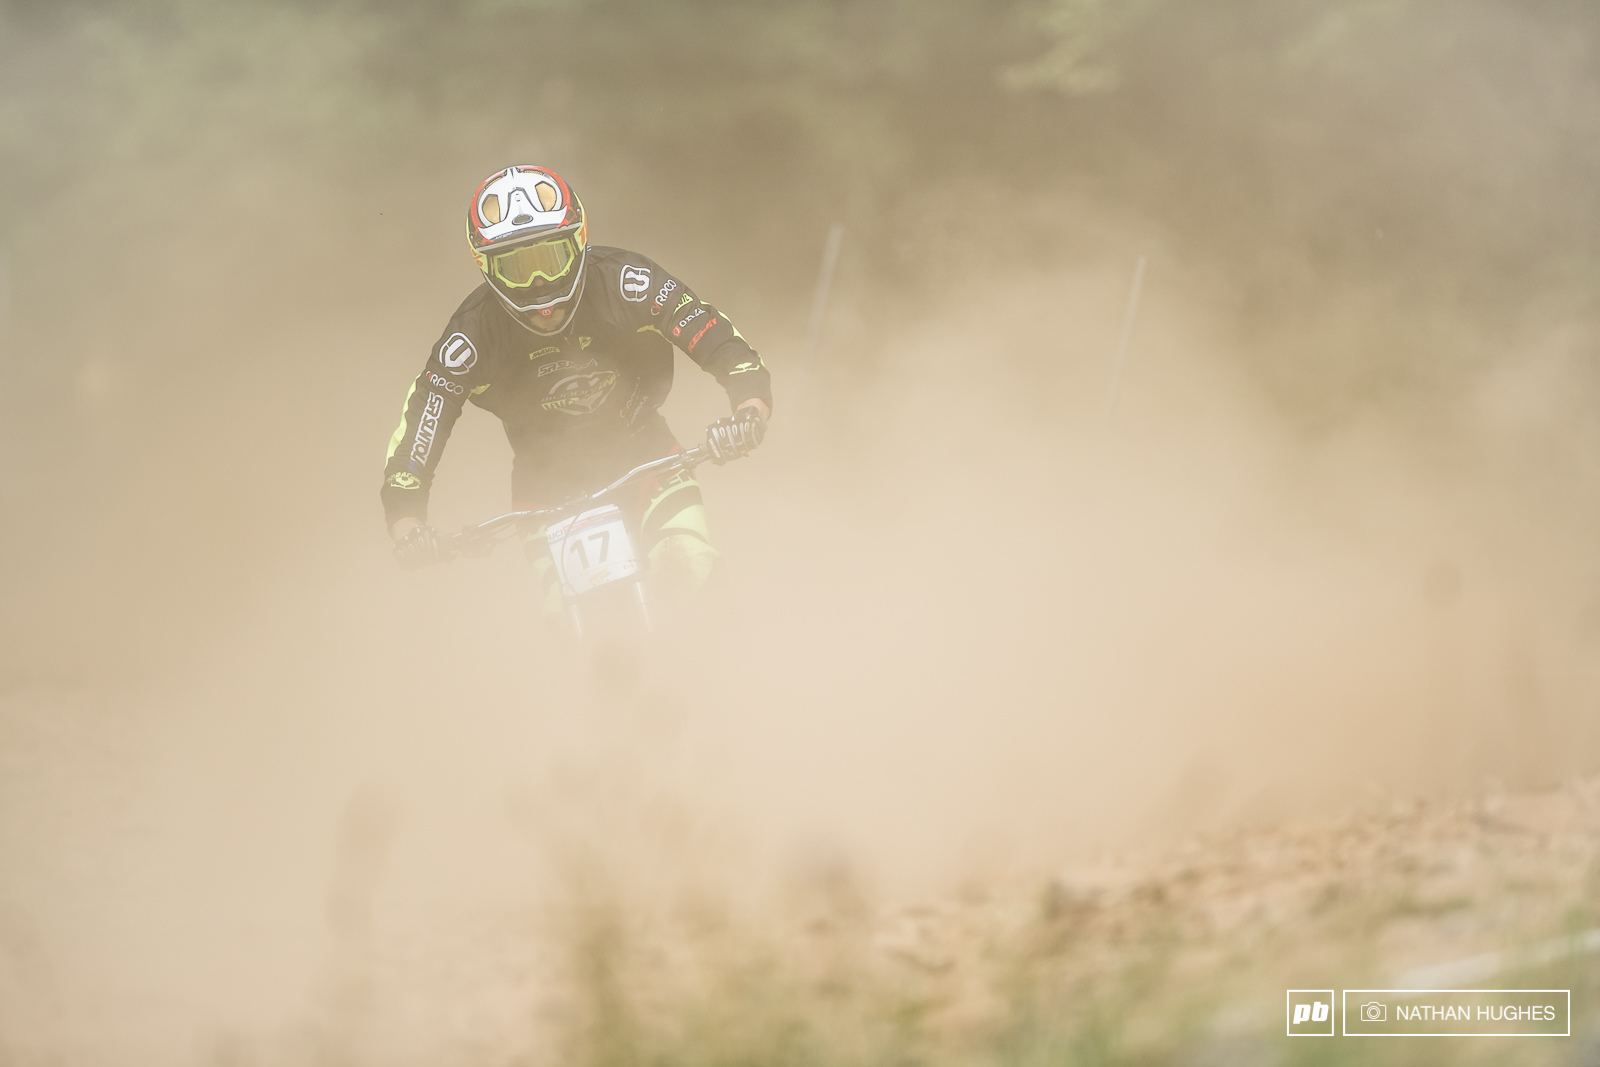 Florent Payet lost in a cloud of course fog but still managing to nail 10th place qualie 9.5 seconds back.